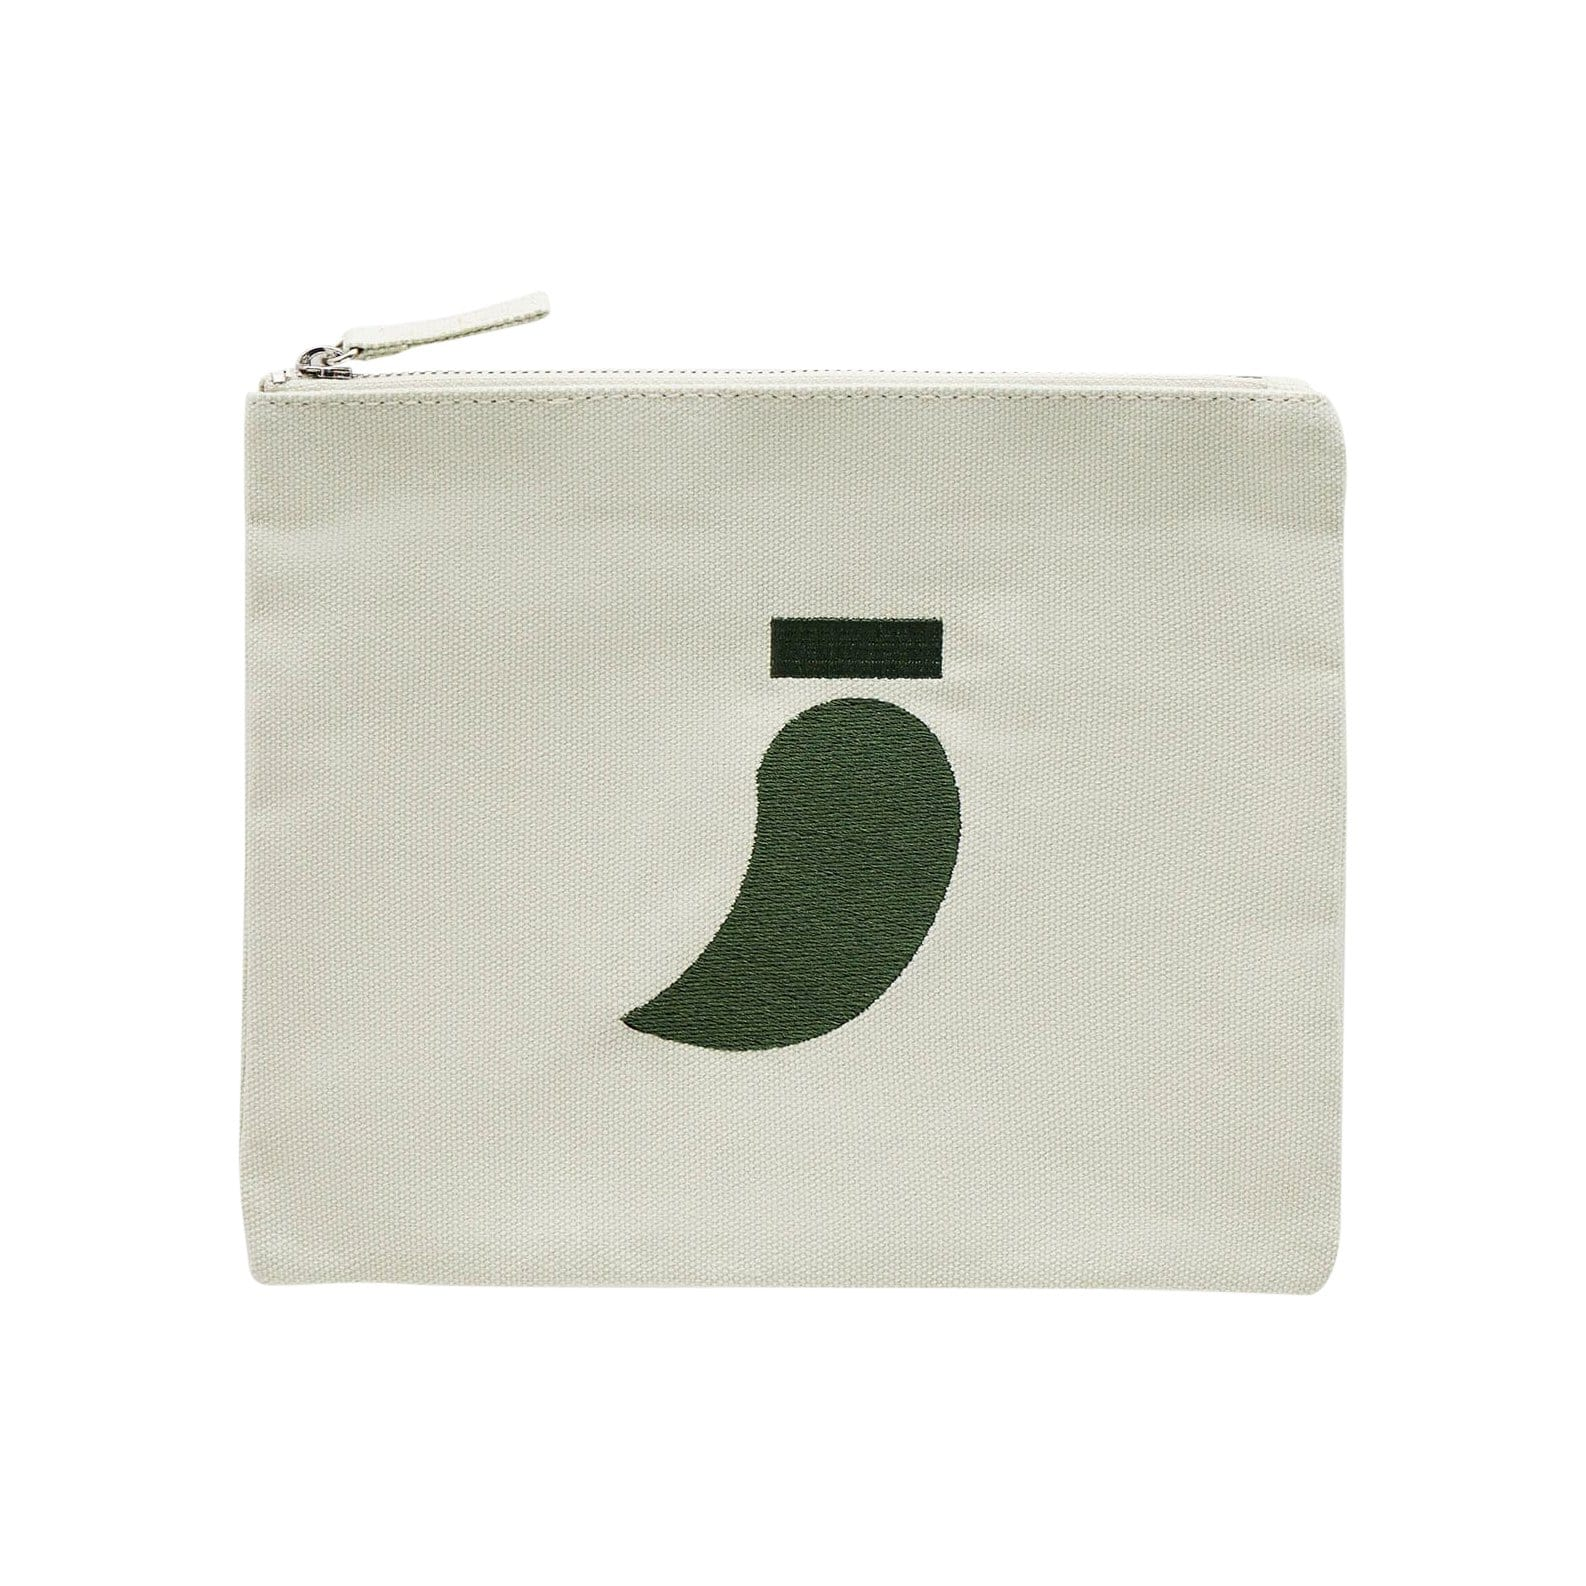 The Painter's Wife Walk Helen F. Green Logo Treat Bag